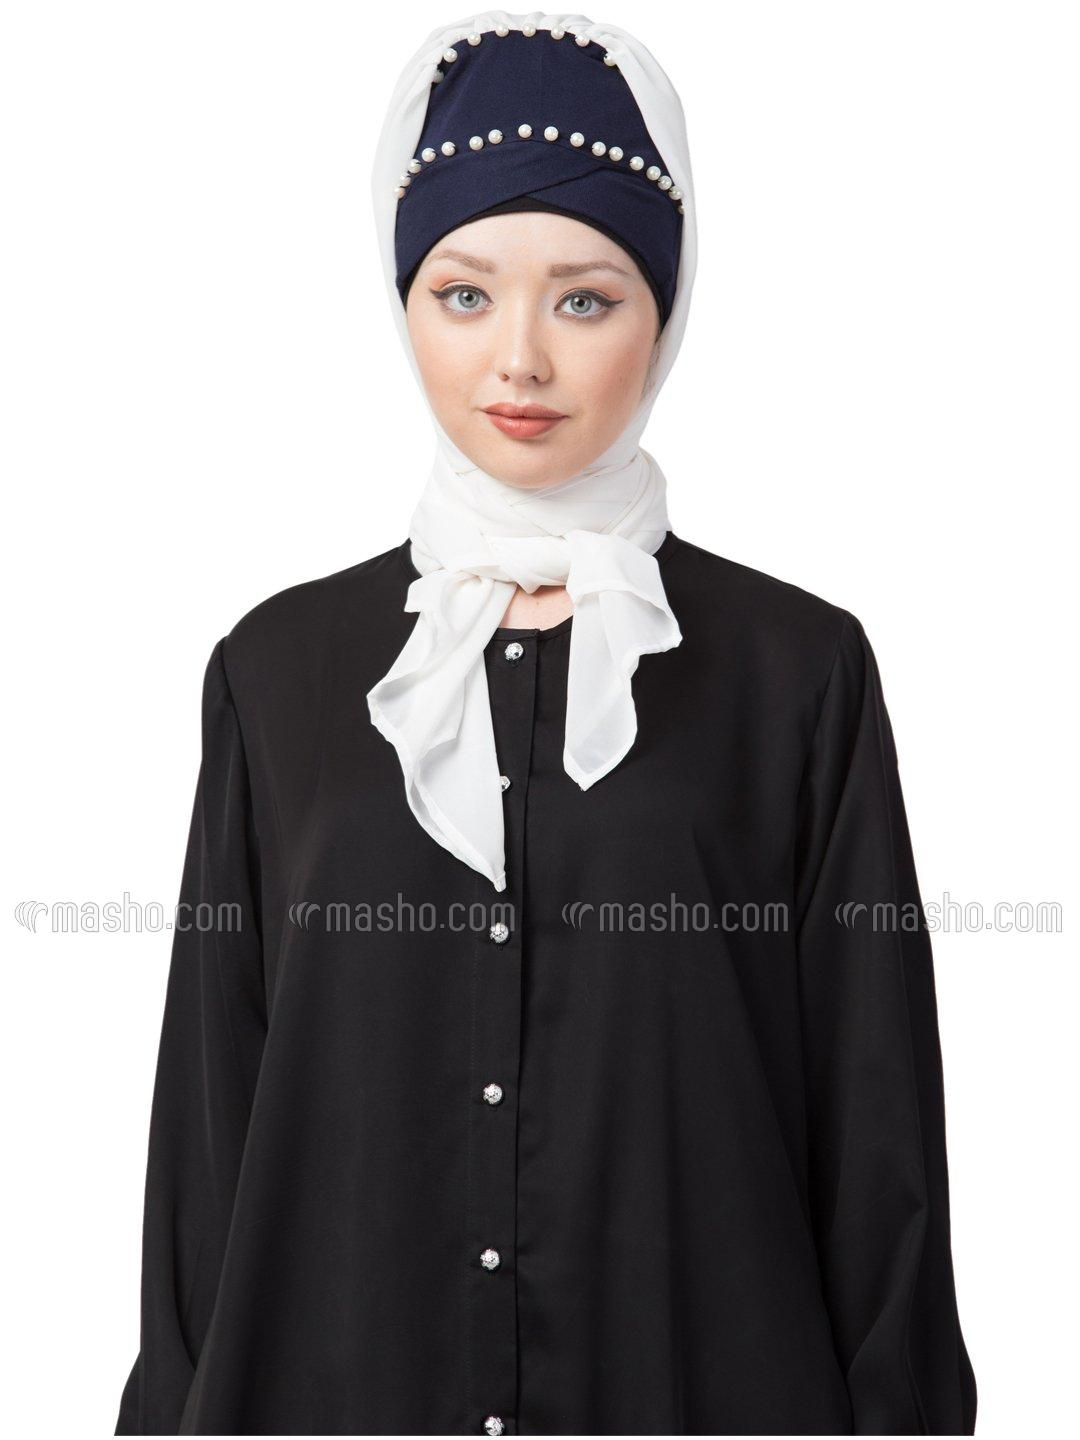 100% Cotton Pearl Work Turban With Attached Hijab In Navy And White